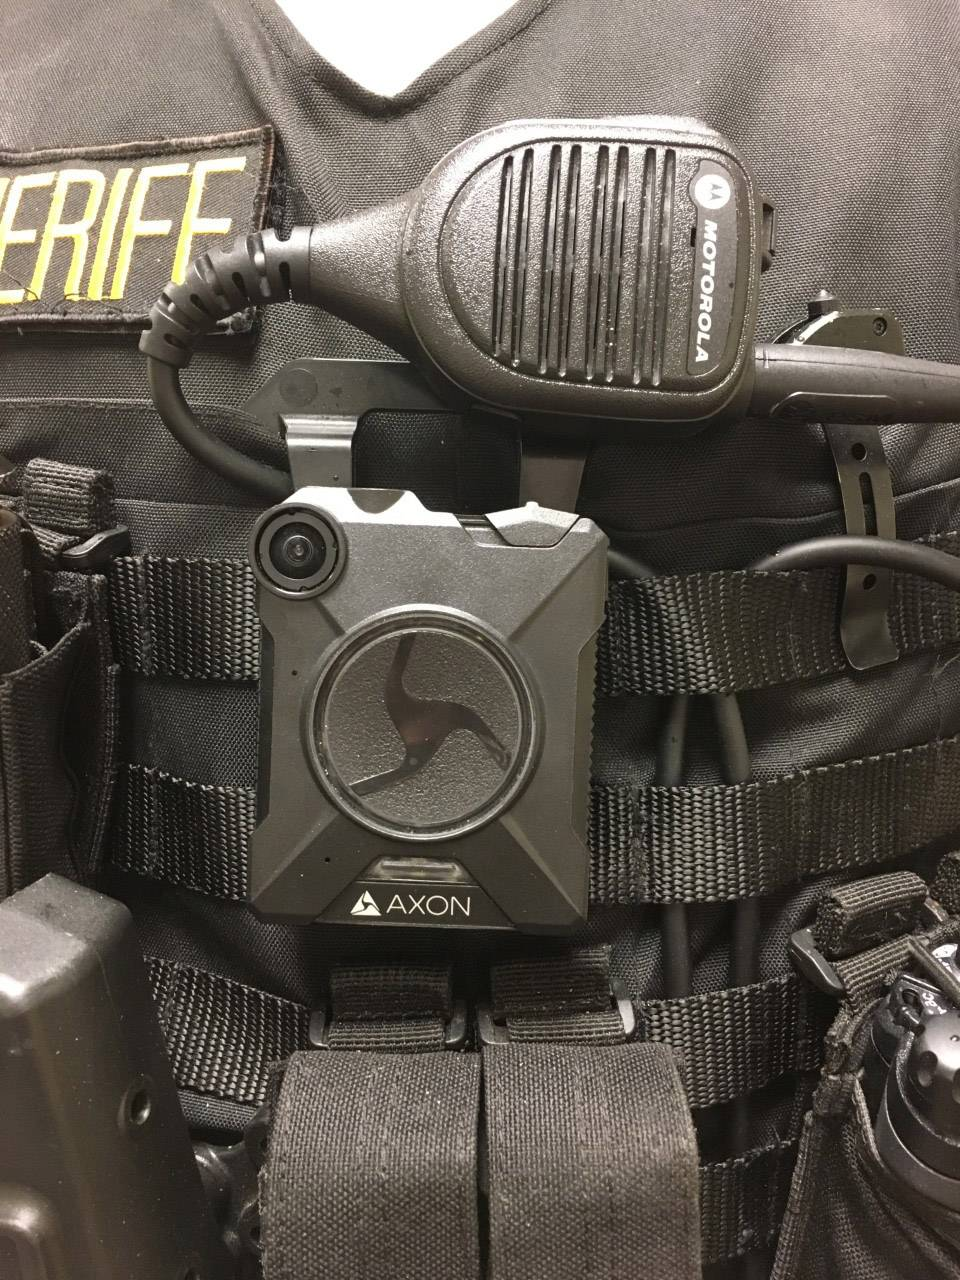 Body camera worn by Lake County Sheriff's officers.